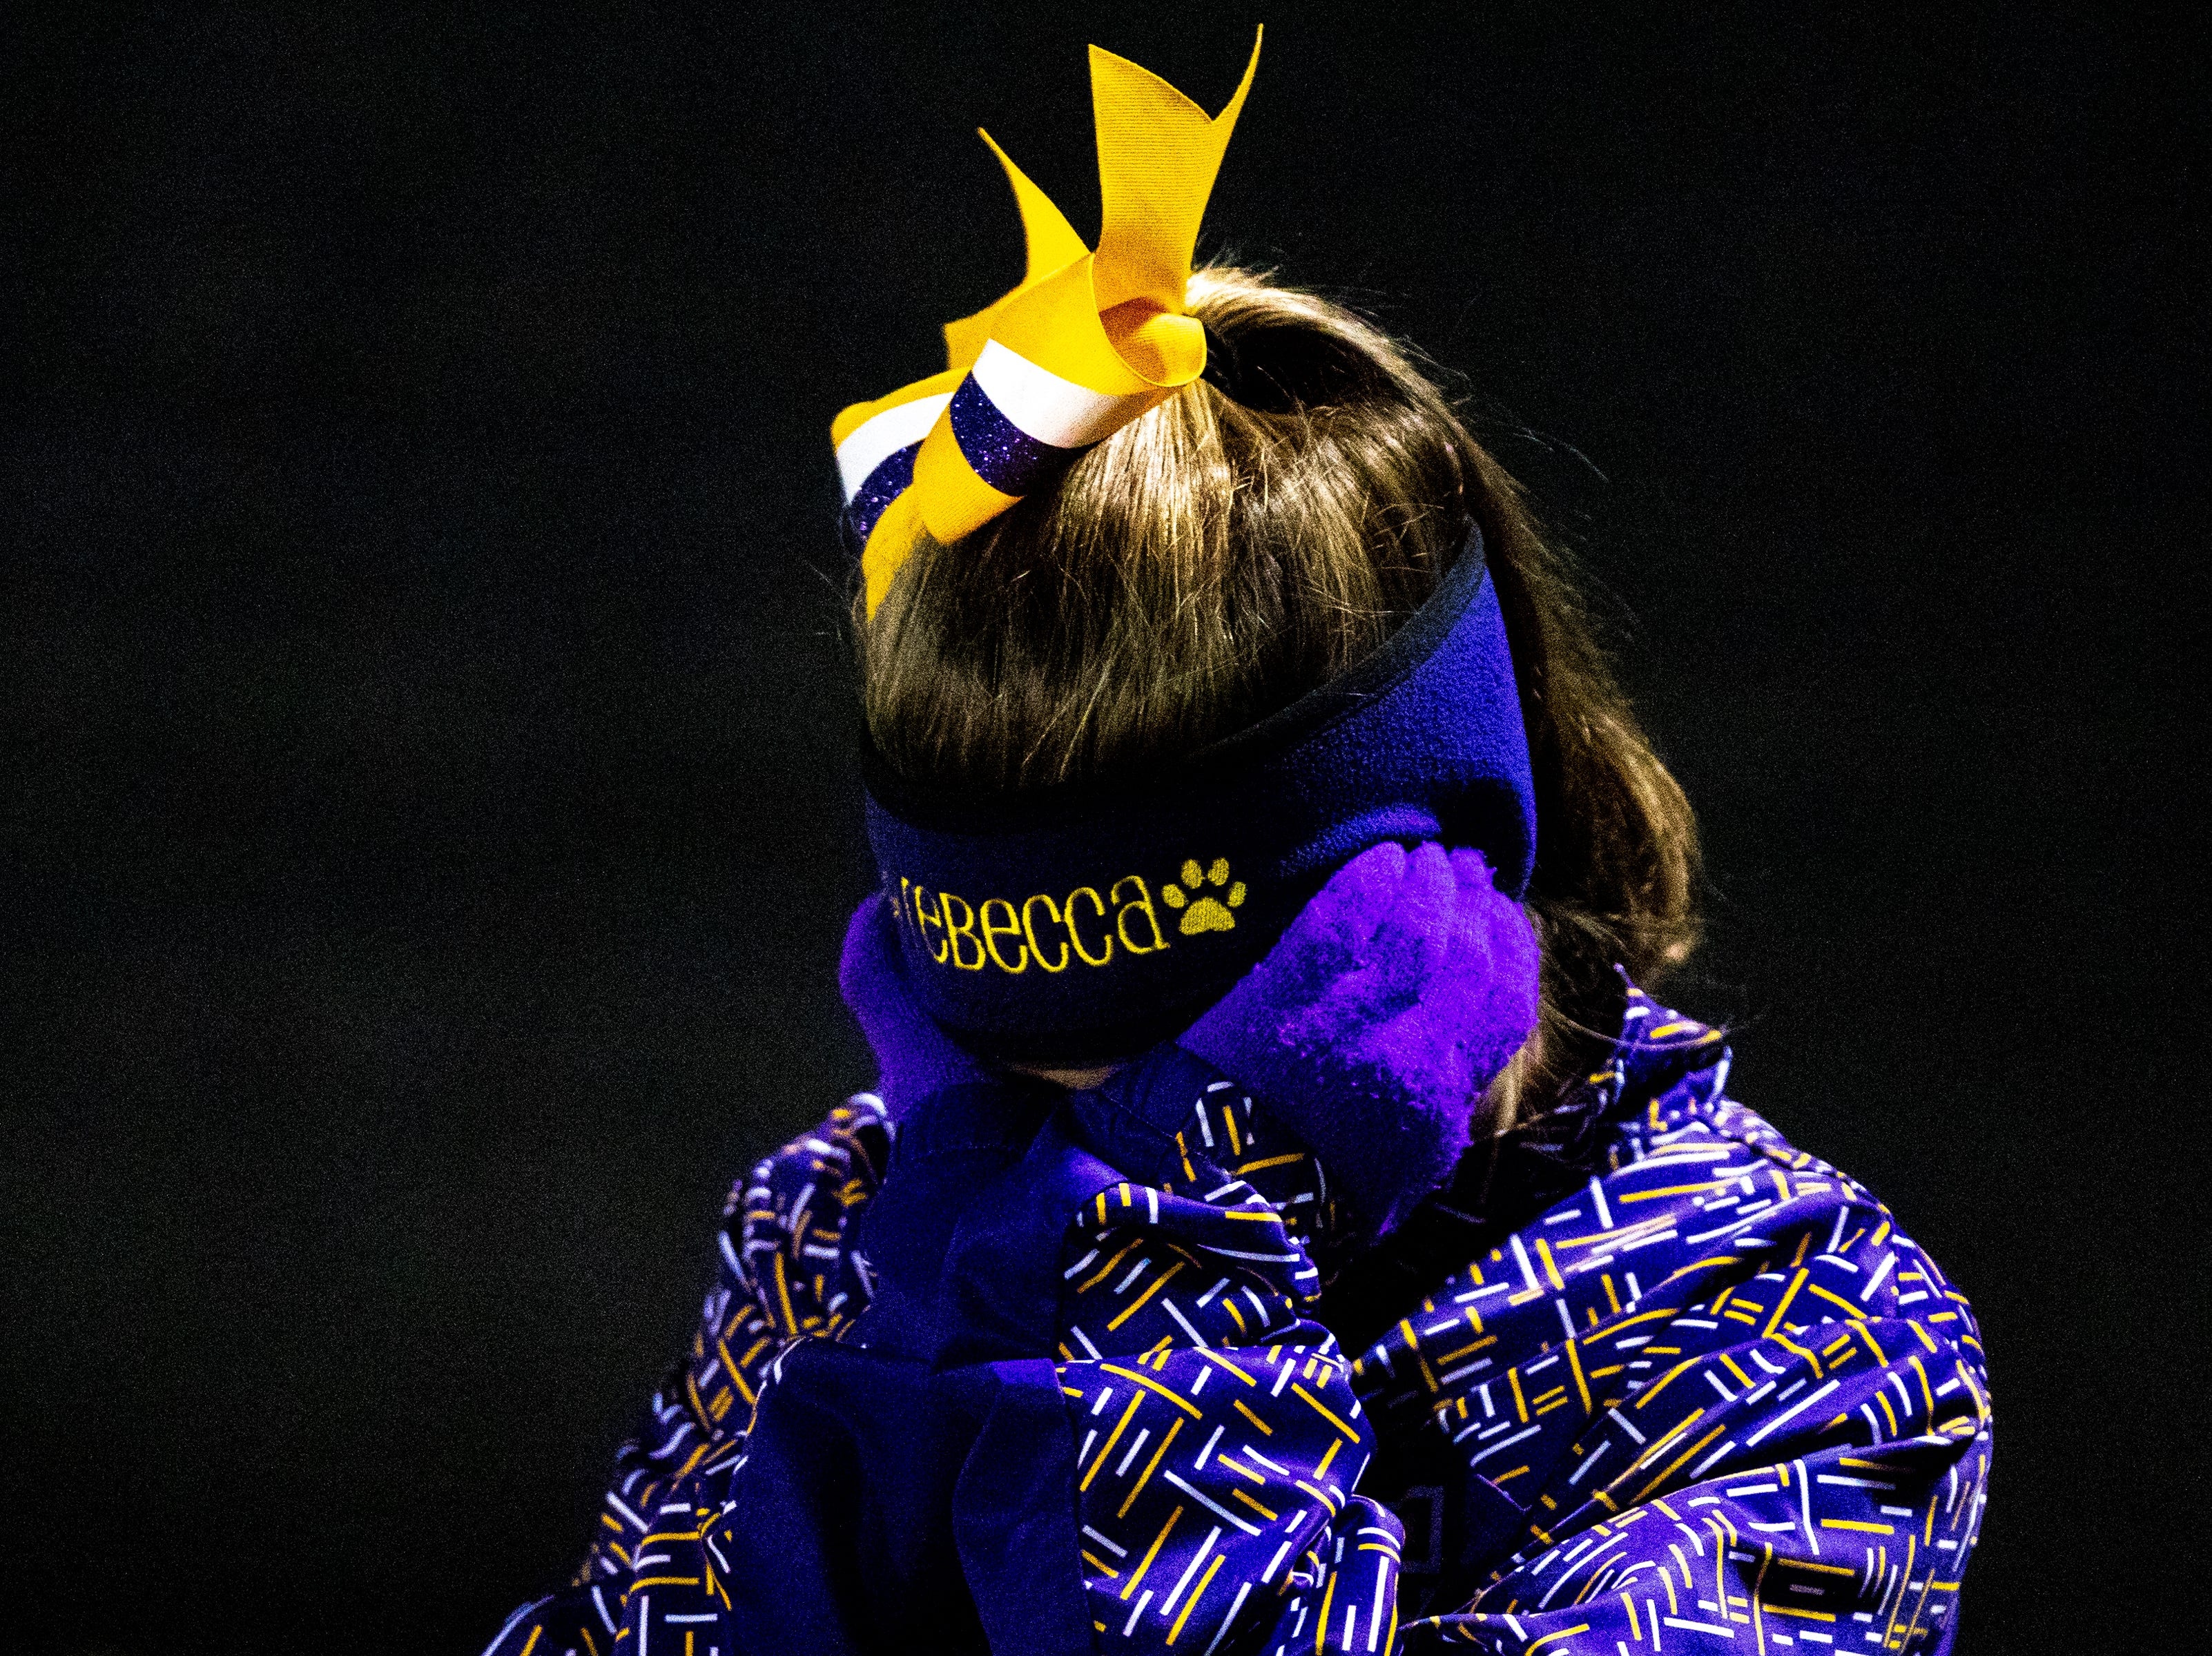 Clarksville High cheerleader Rebecca Bogle covers her face during the second half at Clarksville High Friday, Nov. 2, 2018, in Clarksville, Tenn.